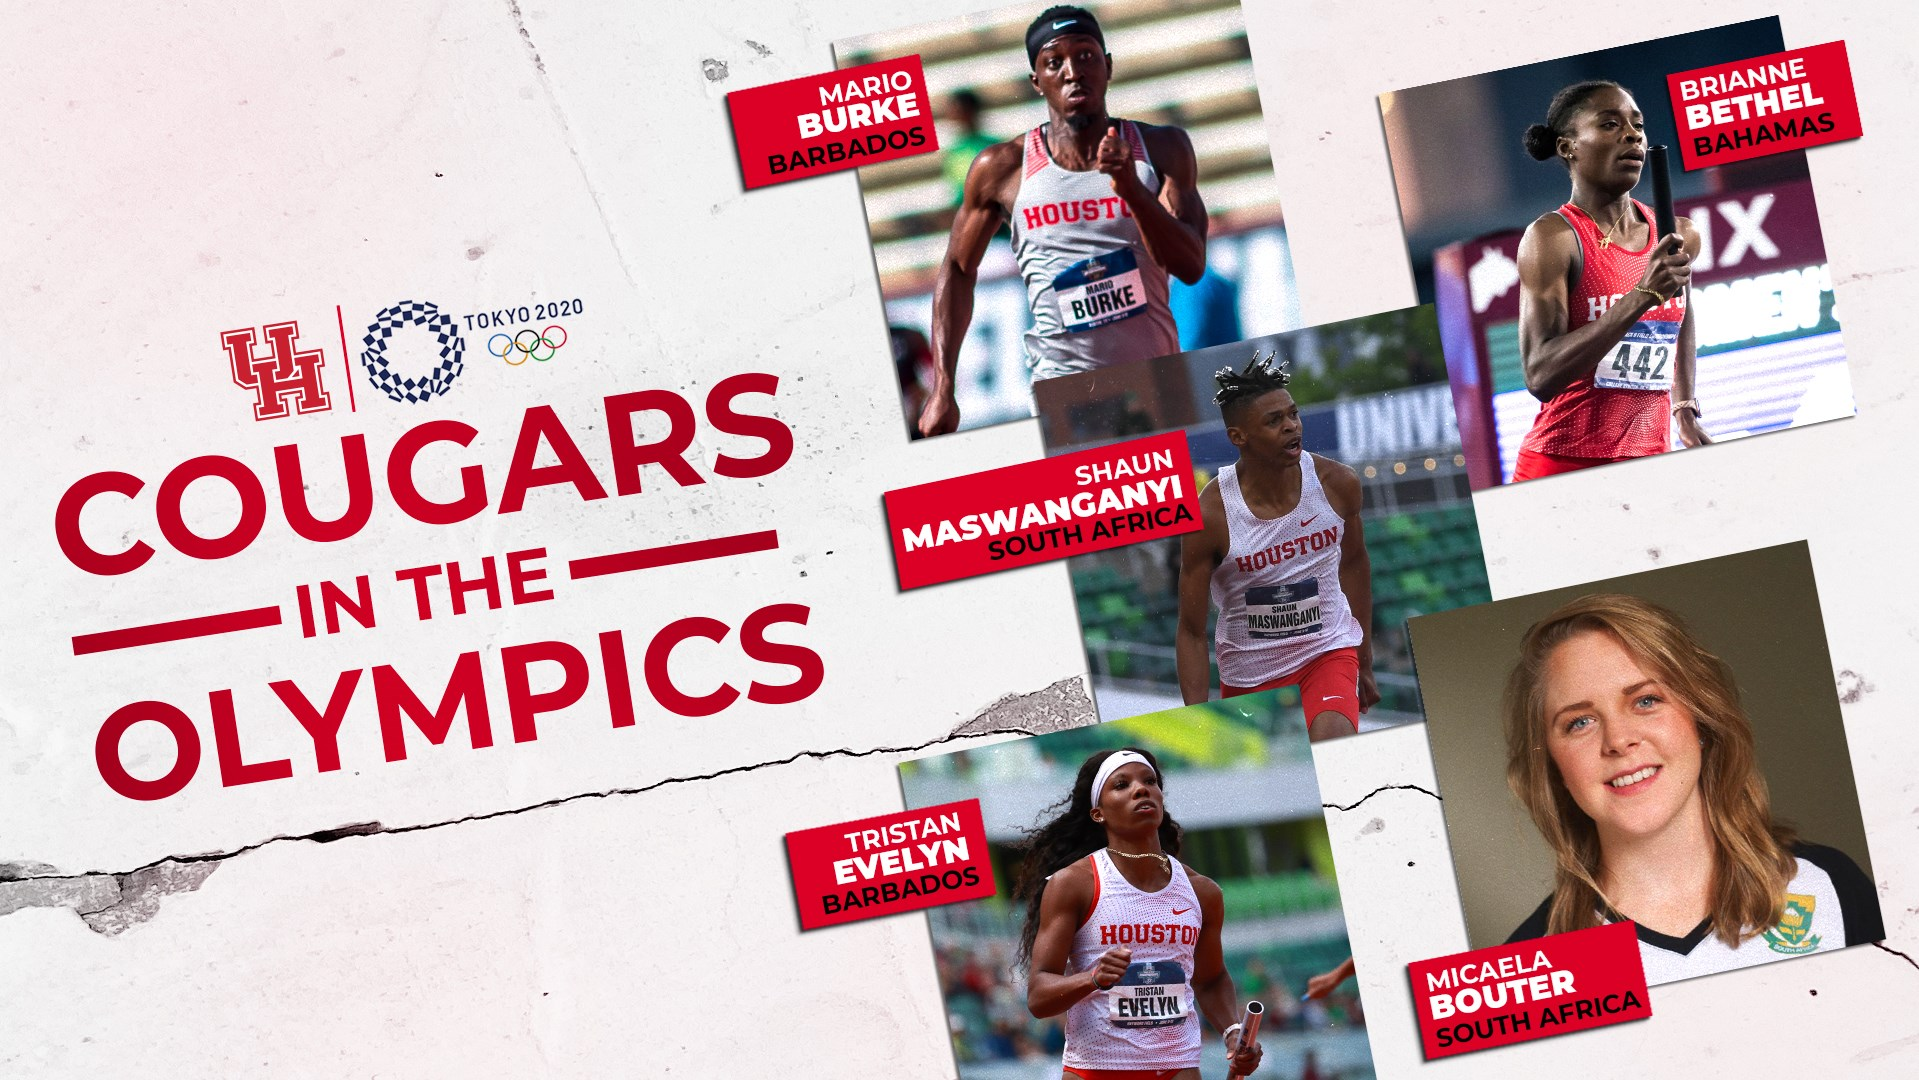 Cougars in the Olympics